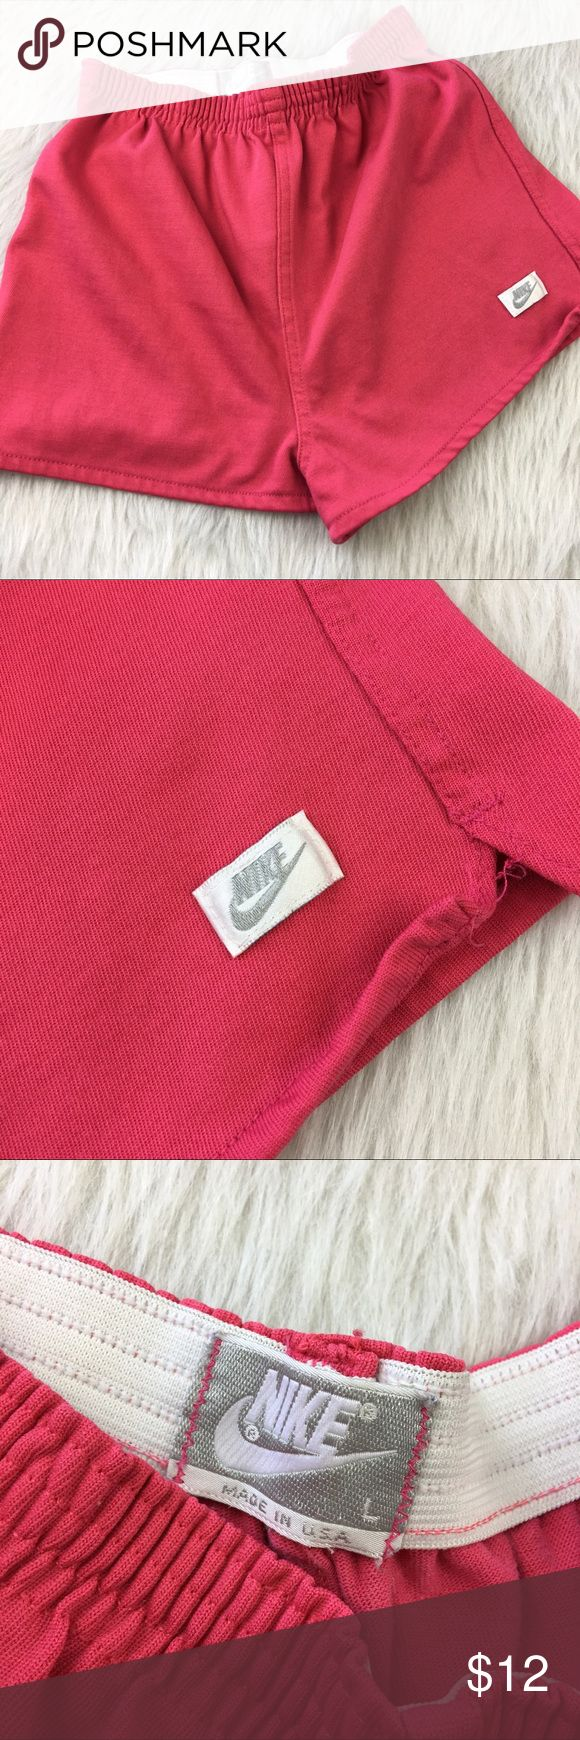 Nike retro pink elastic waist active cheer shorts Preloved. Size large but really is more like a size medium. Classics! Nike retro pink elastic waist active cheer shorts. Nike Shorts